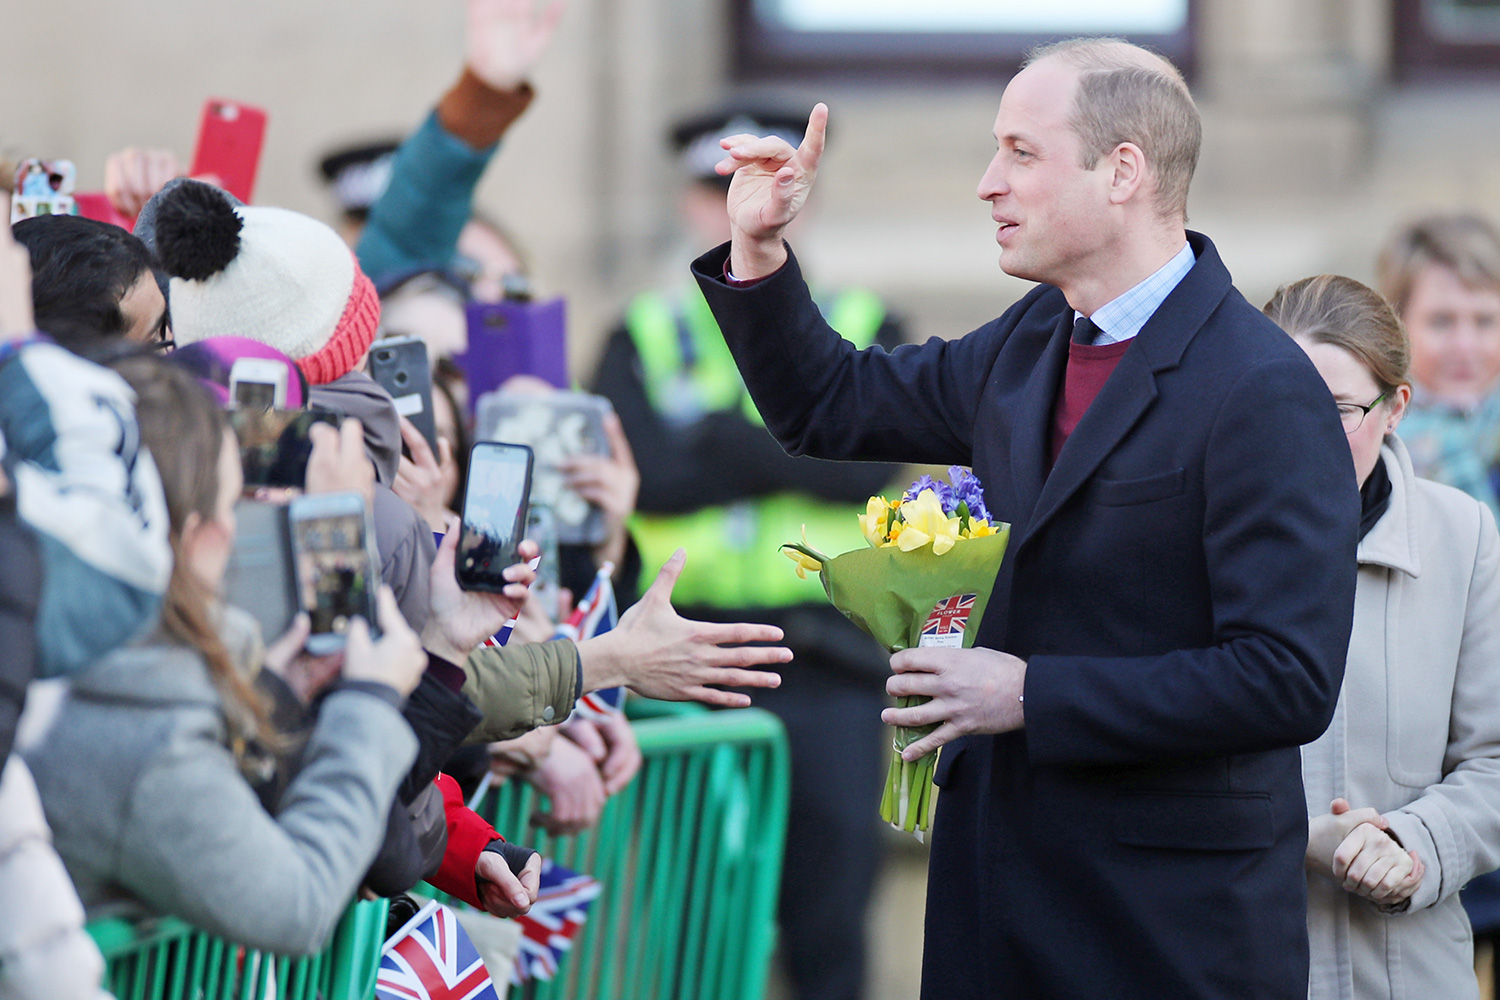 The Duke of Cambridge speaks to local people as he leaves after a visit to City Hall in Bradford to join a group of young people from across the community to hear about life in the city.